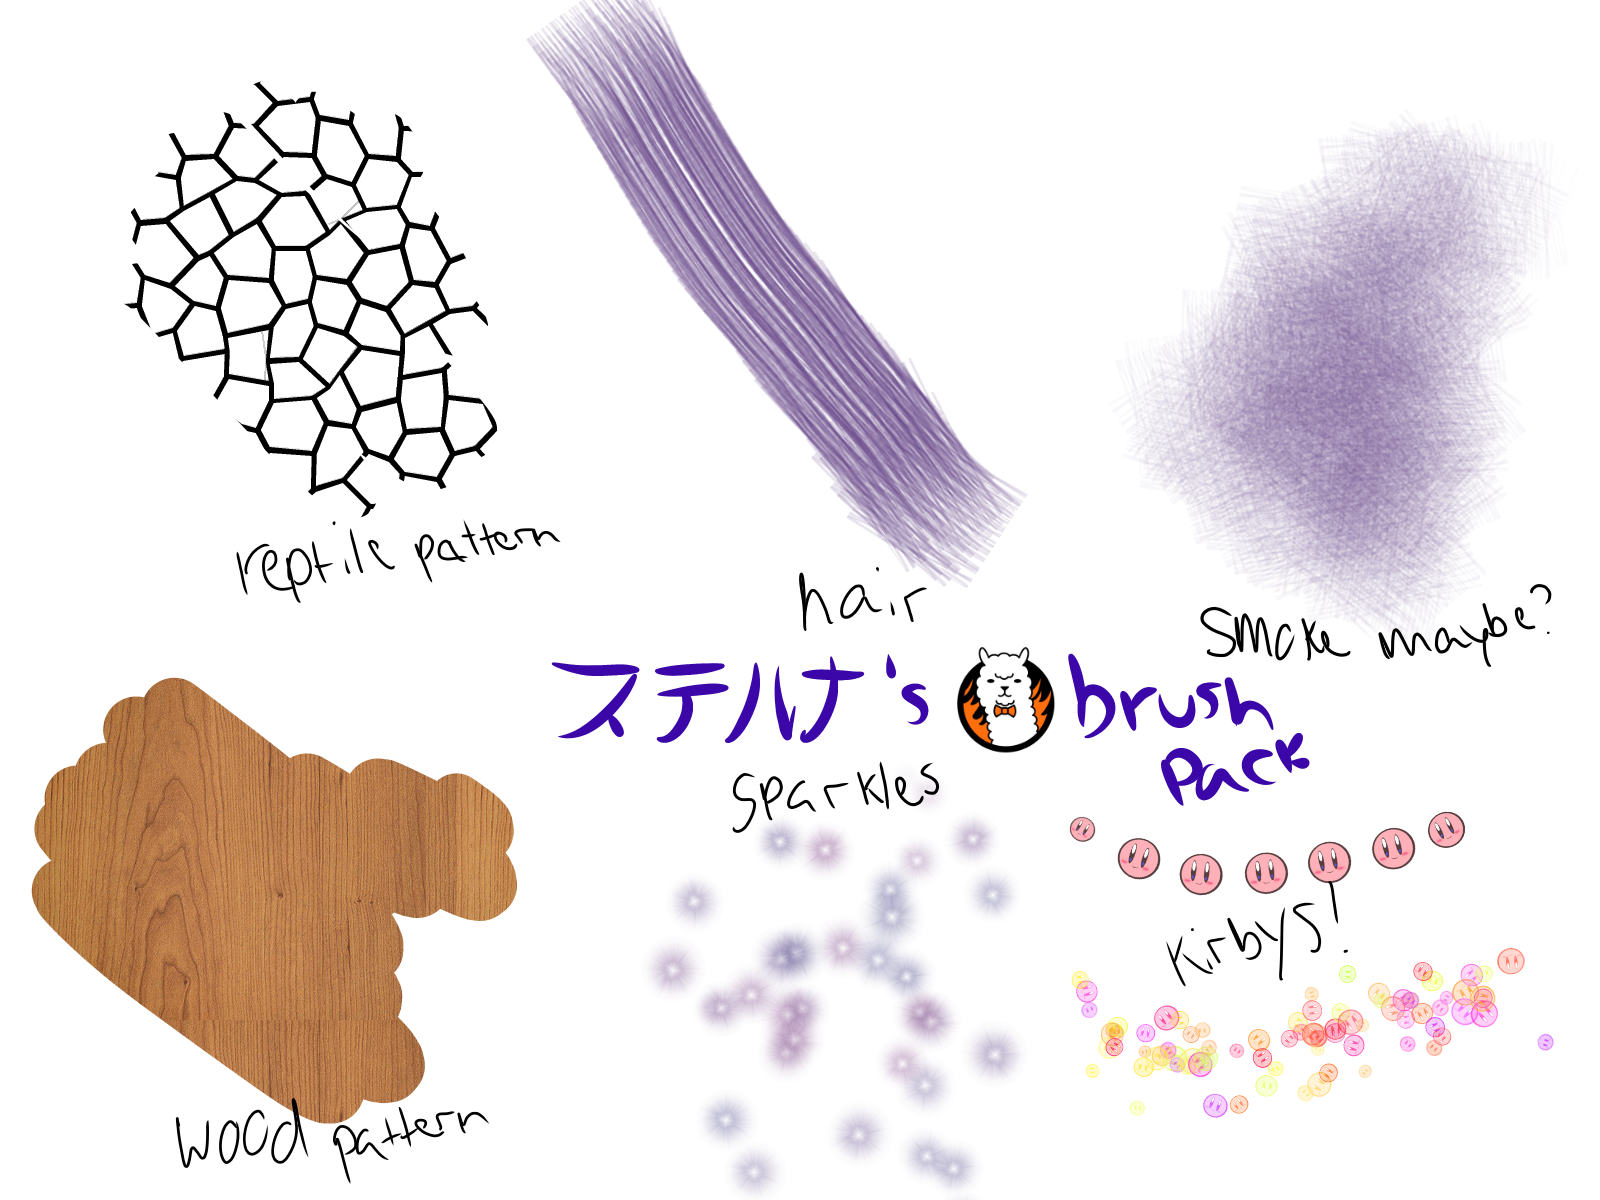 svg transparent library Firealpaca vector. And medibang paint pro